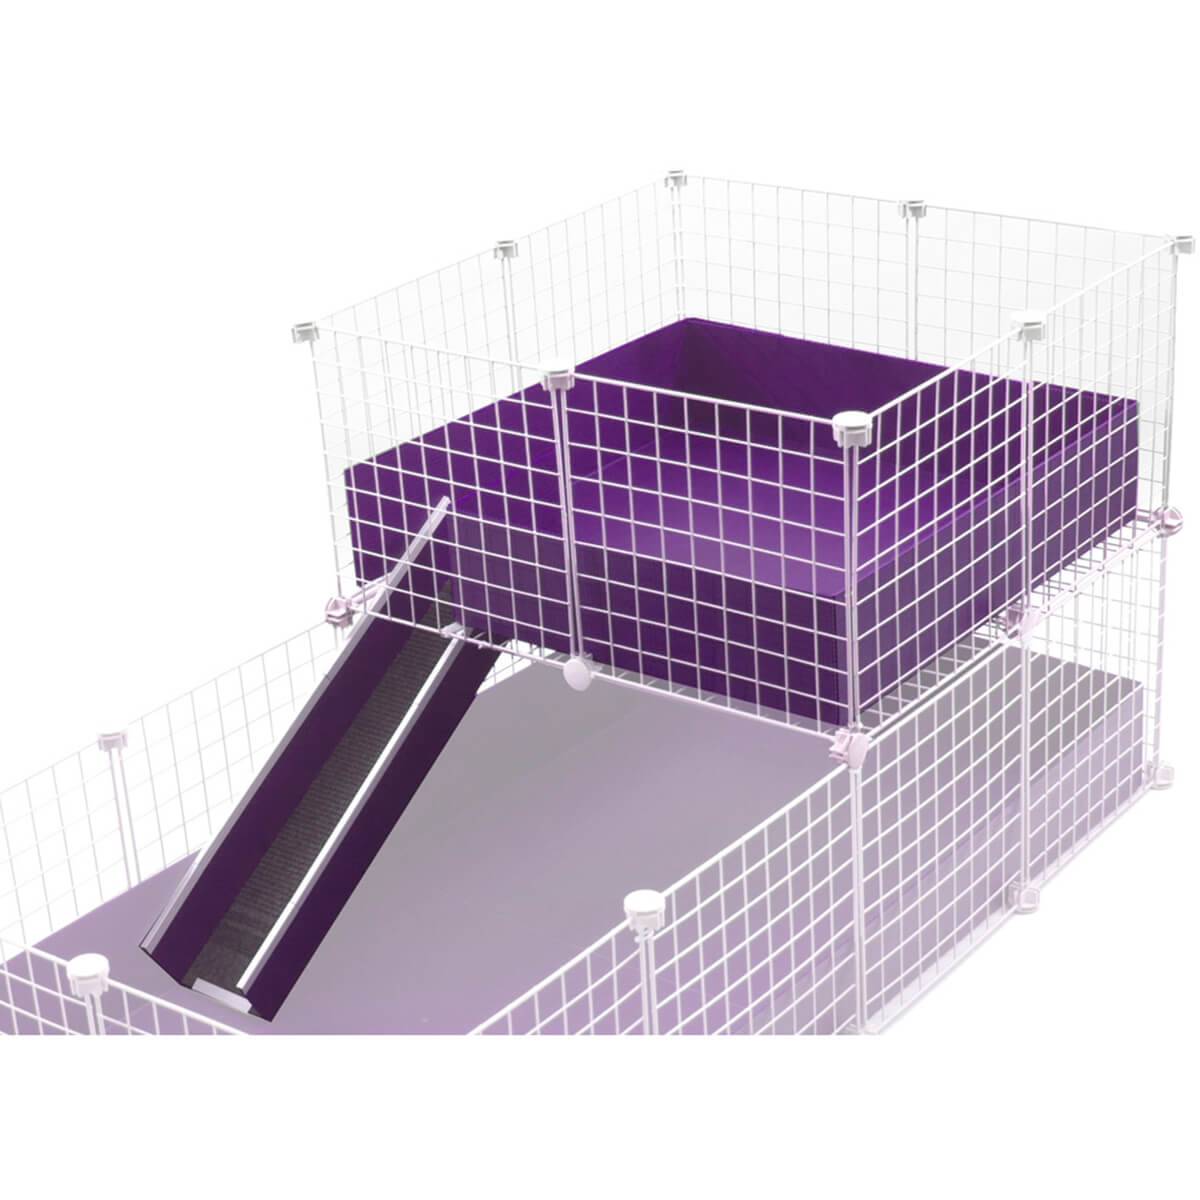 Wide Loft with Ramp shown in purple for guinea pig C&C cages, made by Cagetopia